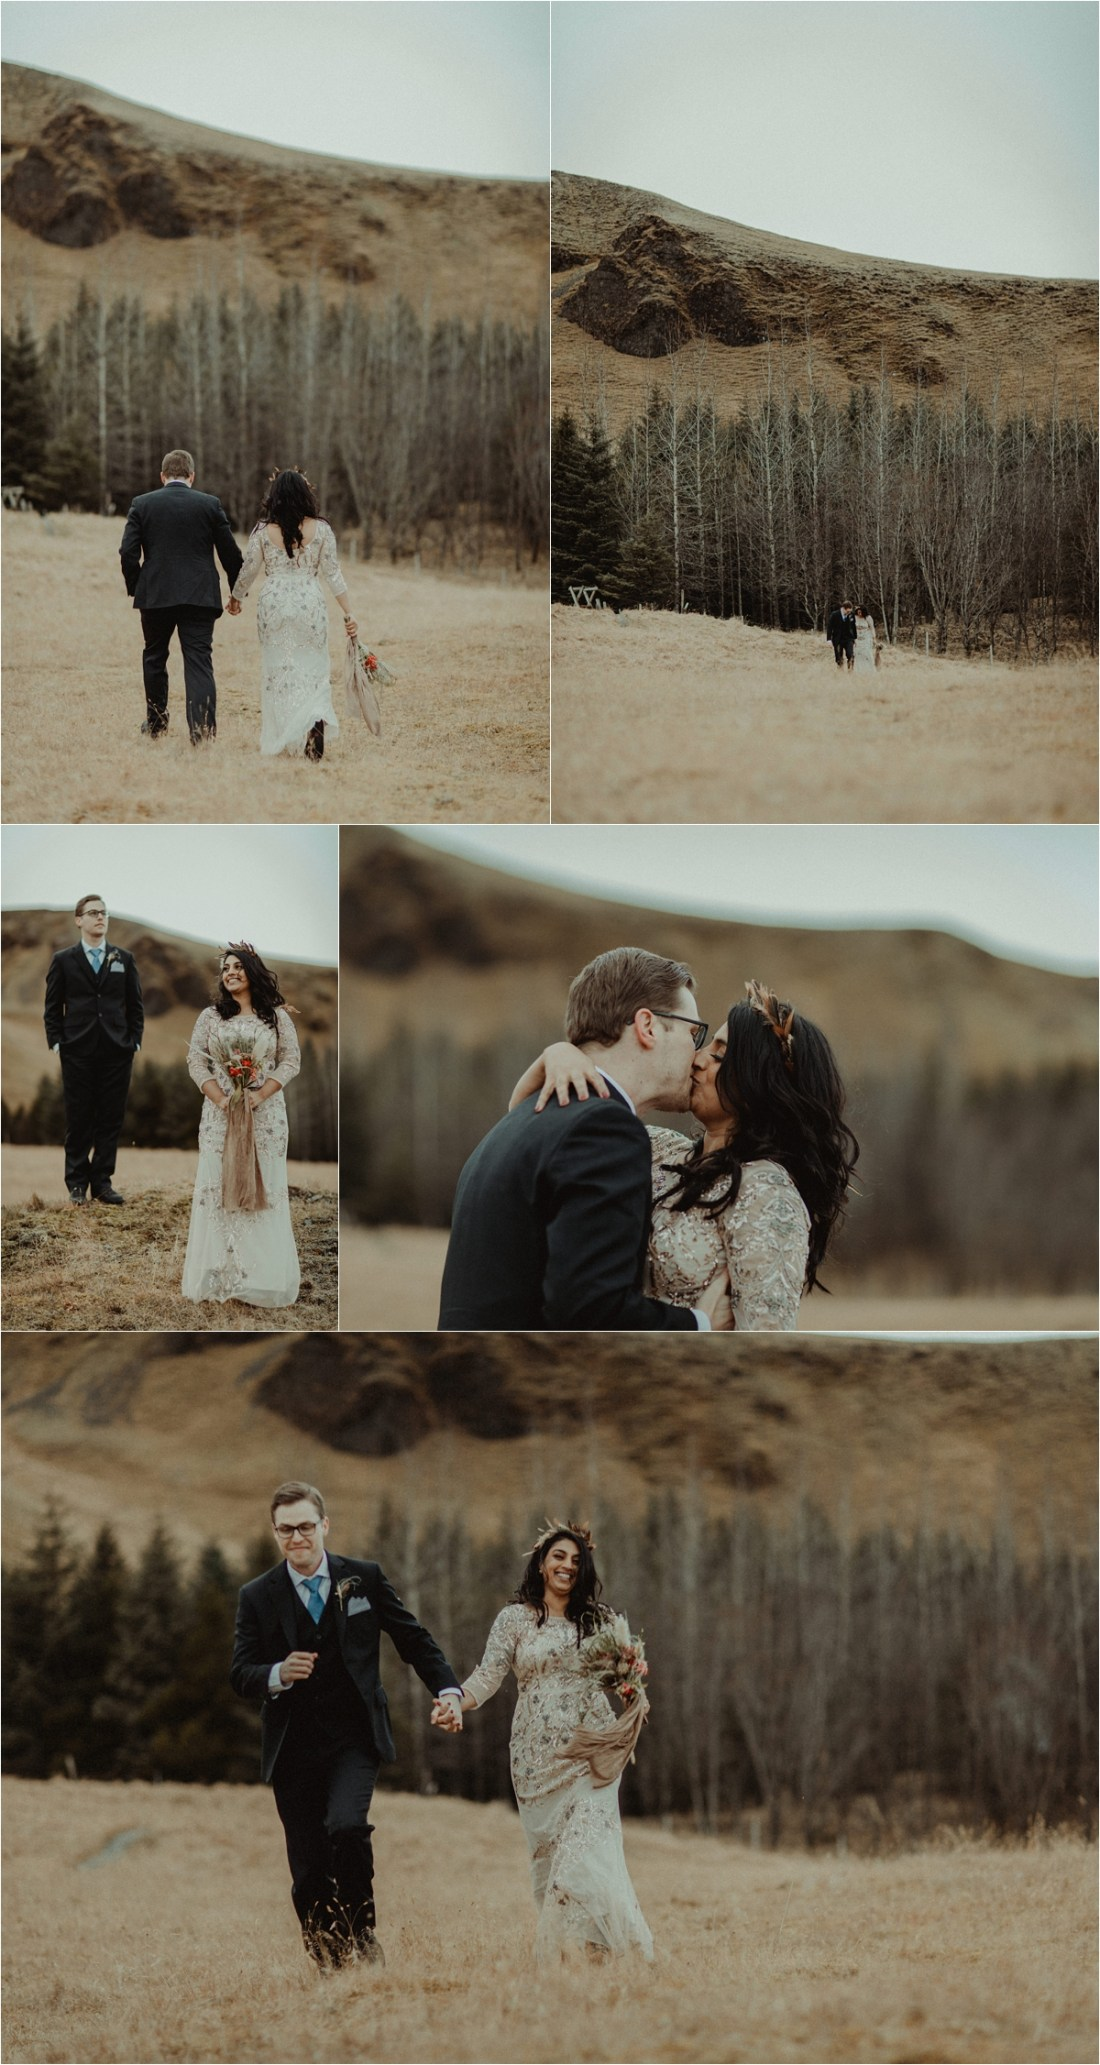 Vanna & Kevin elope at the side of the road in Iceland whilst escaping a blizzard by Zakas Photography